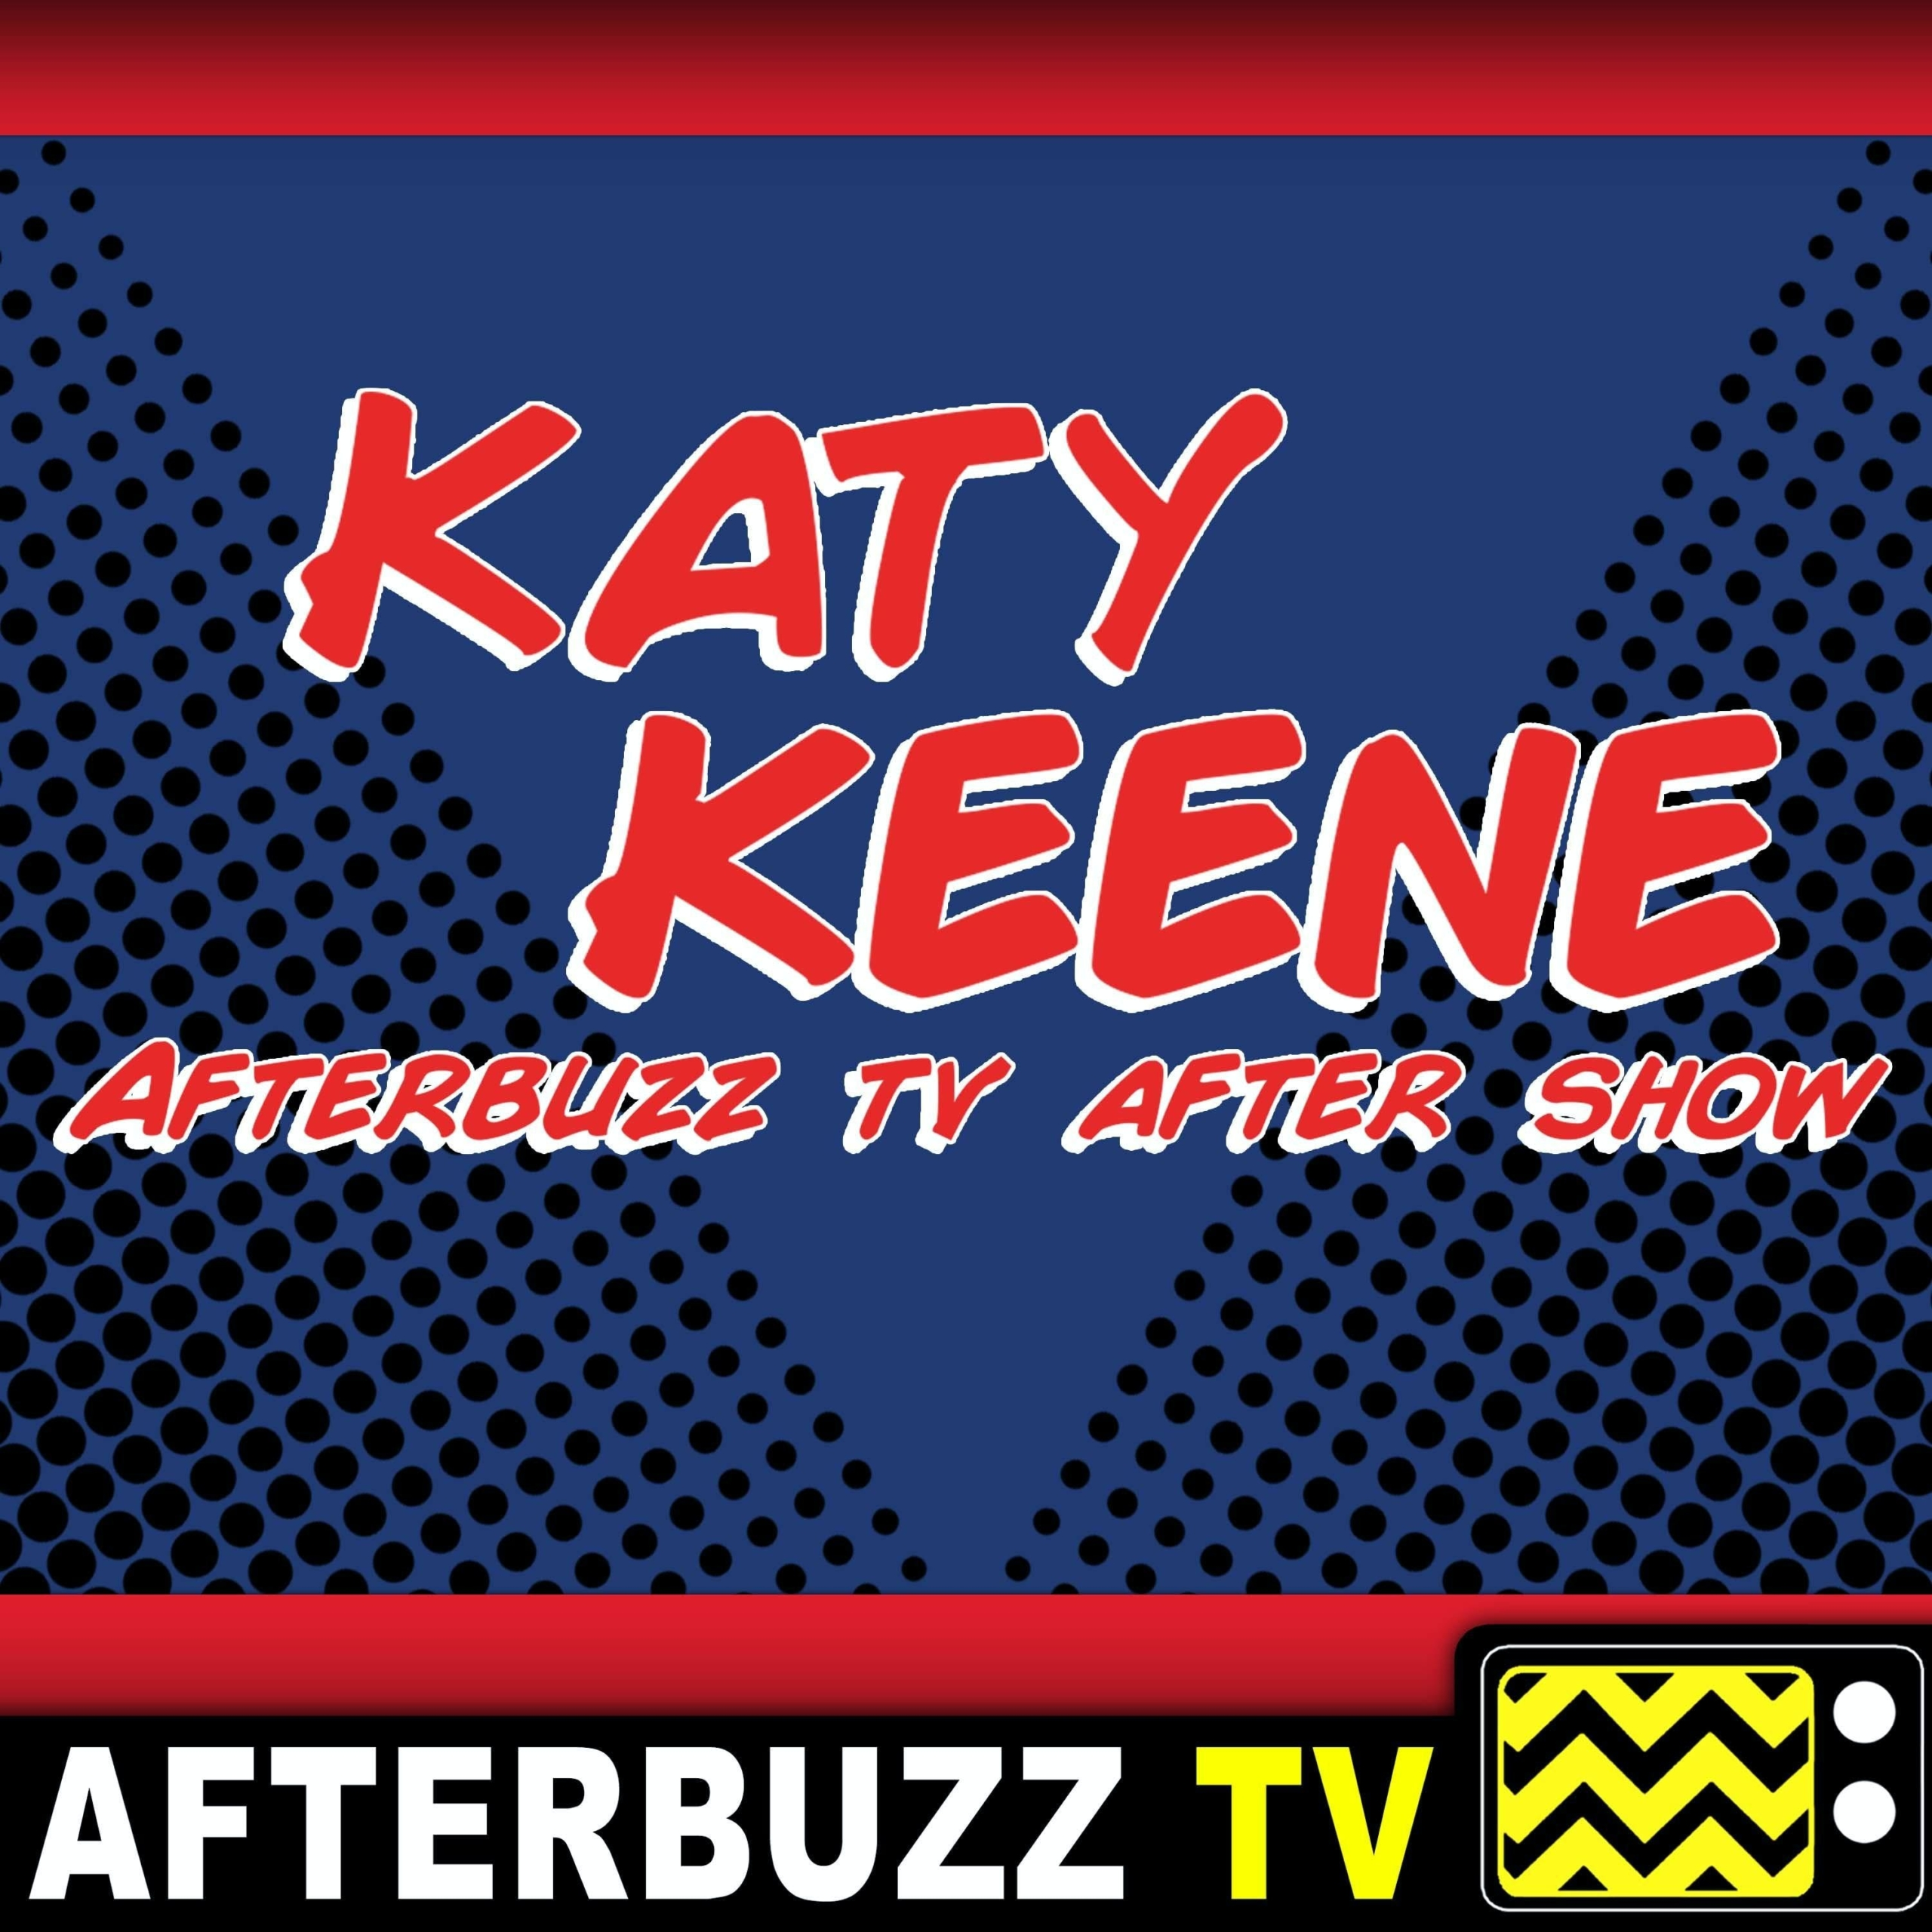 Katy Keene S1 E13 Recap & After Show: All Good Things Must Come To An End Or Do They?…